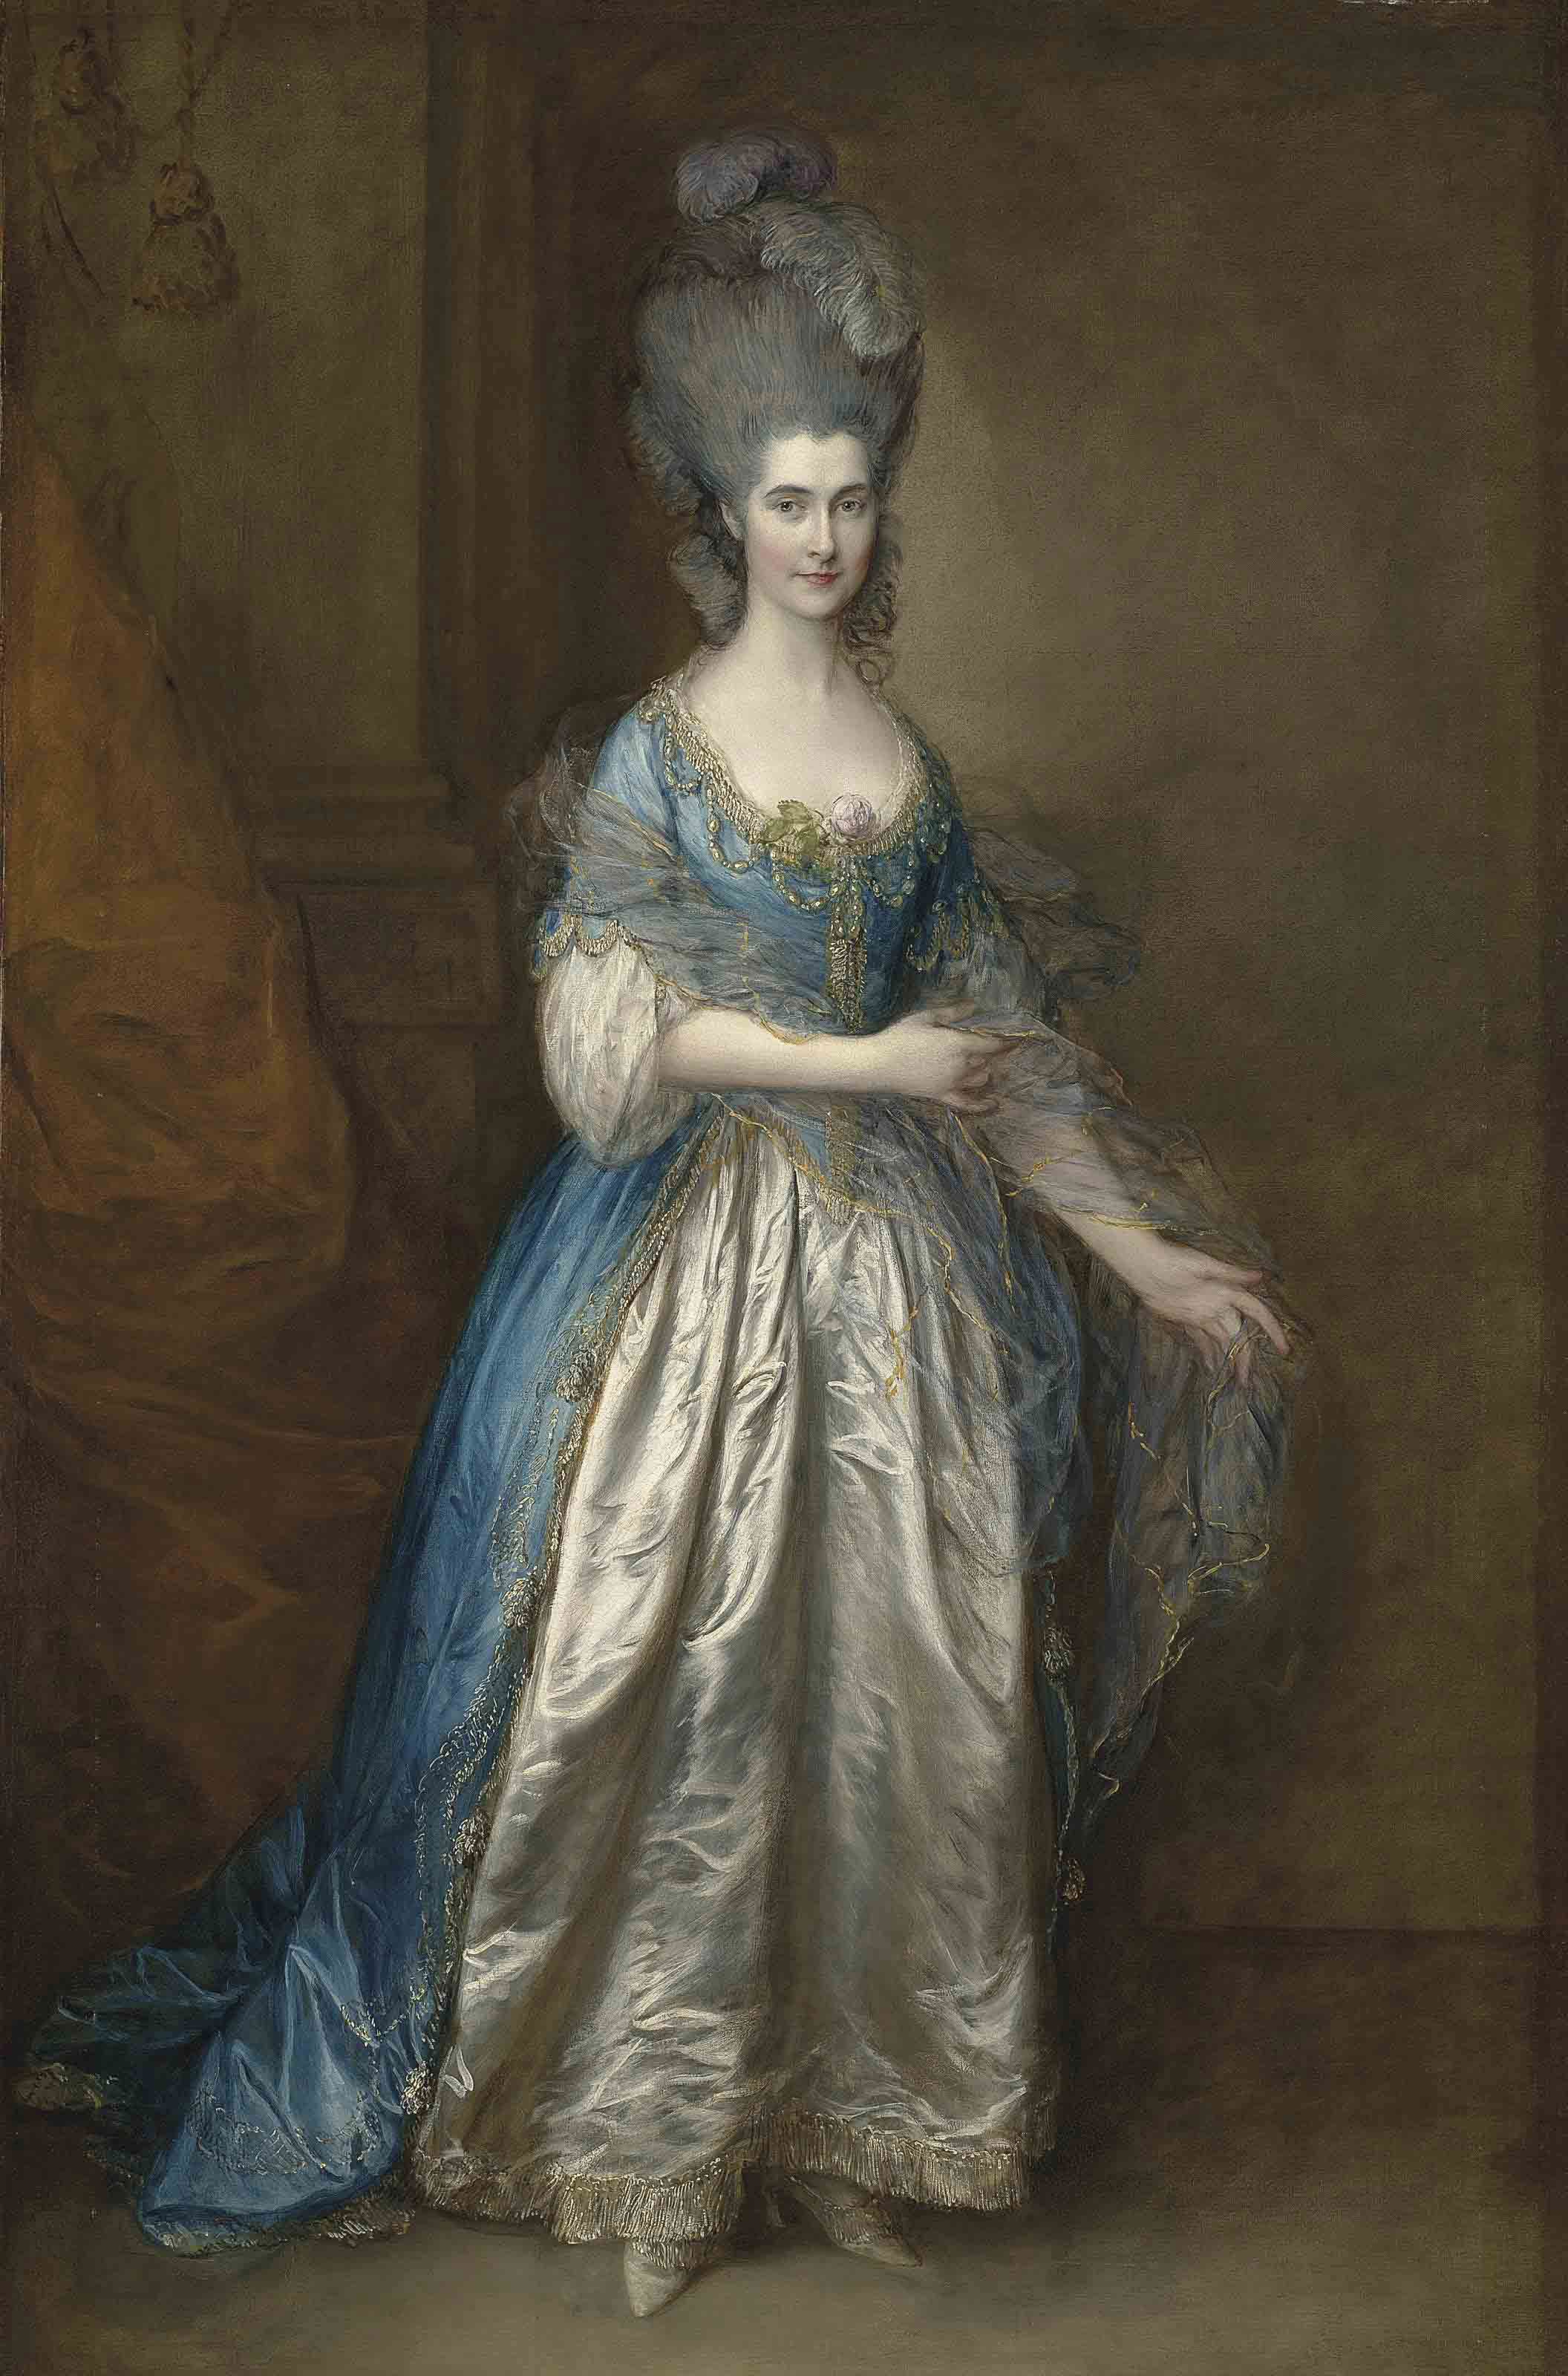 Portrait of Mrs. William Villebois, full-length, in masquerade dress, with a blue gown and a lace-edged satin skirt, holding a diaphanous wrap, beside a pilaster